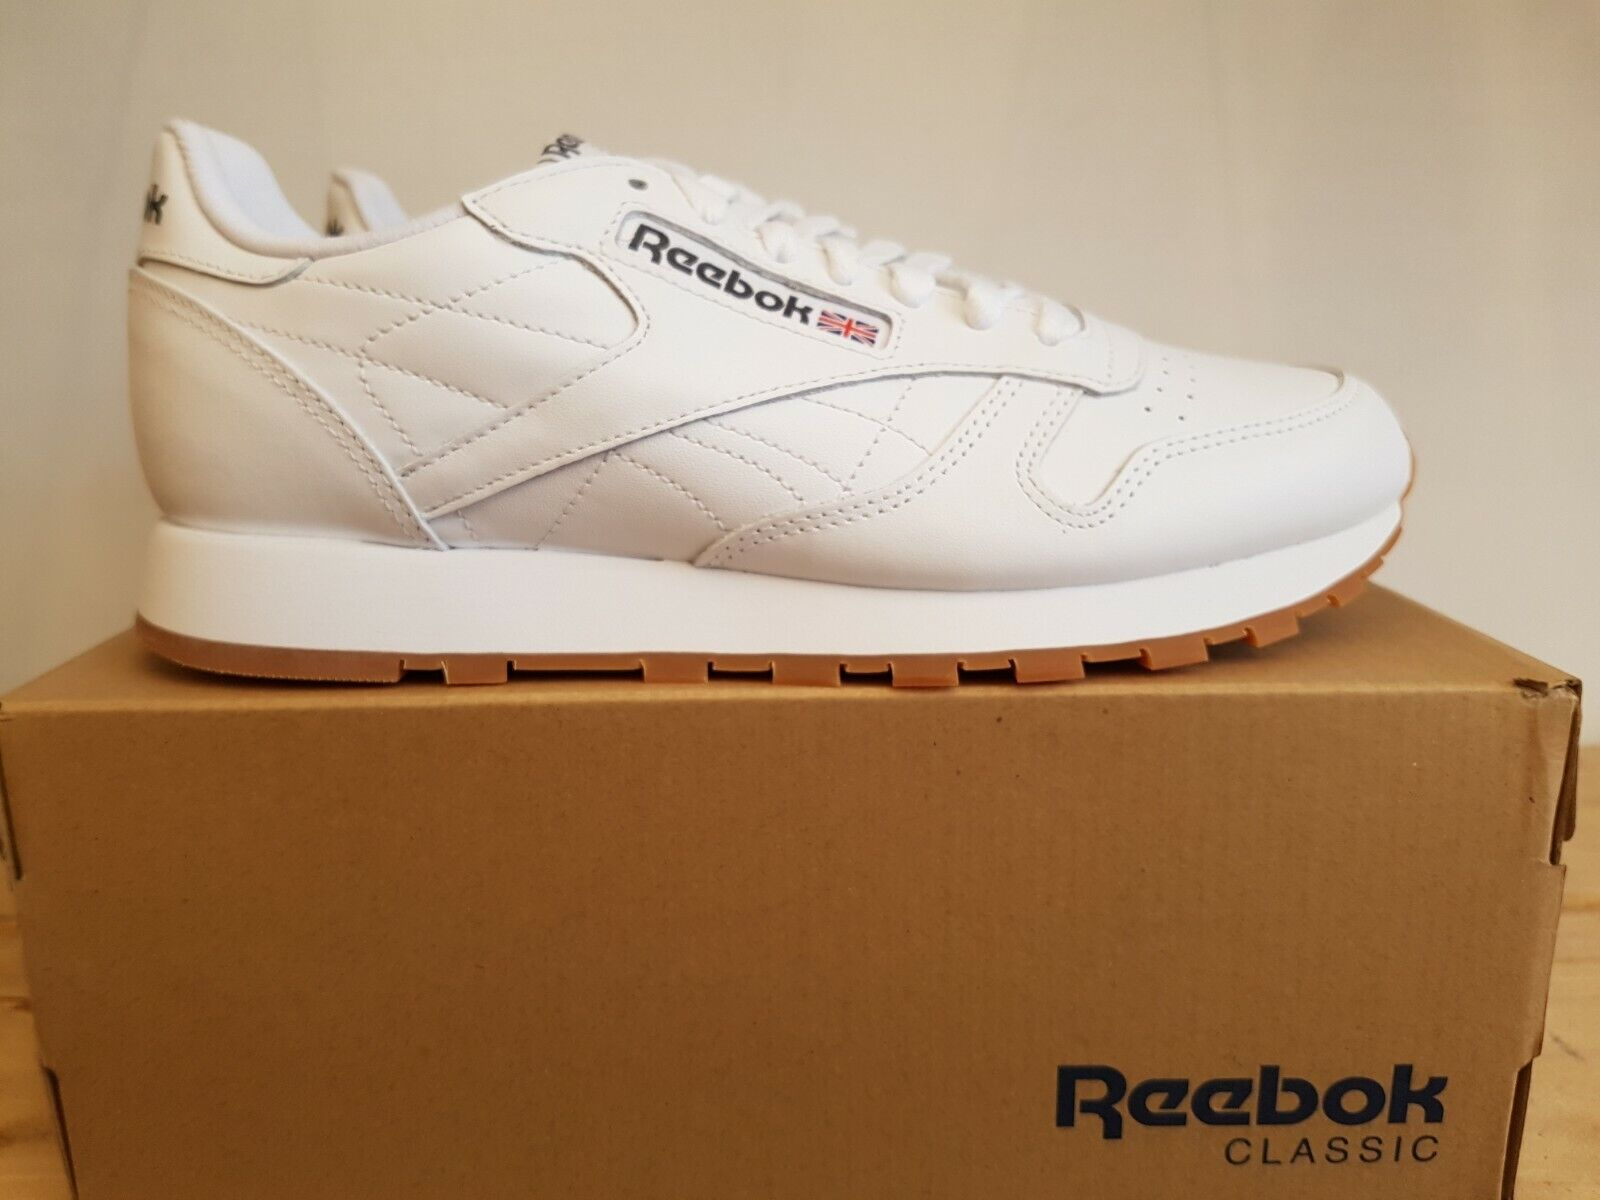 NEW IN THE BOX REEBOK CLASSIC LEATHER 49797 blanco GUM zapatos FOR MEN